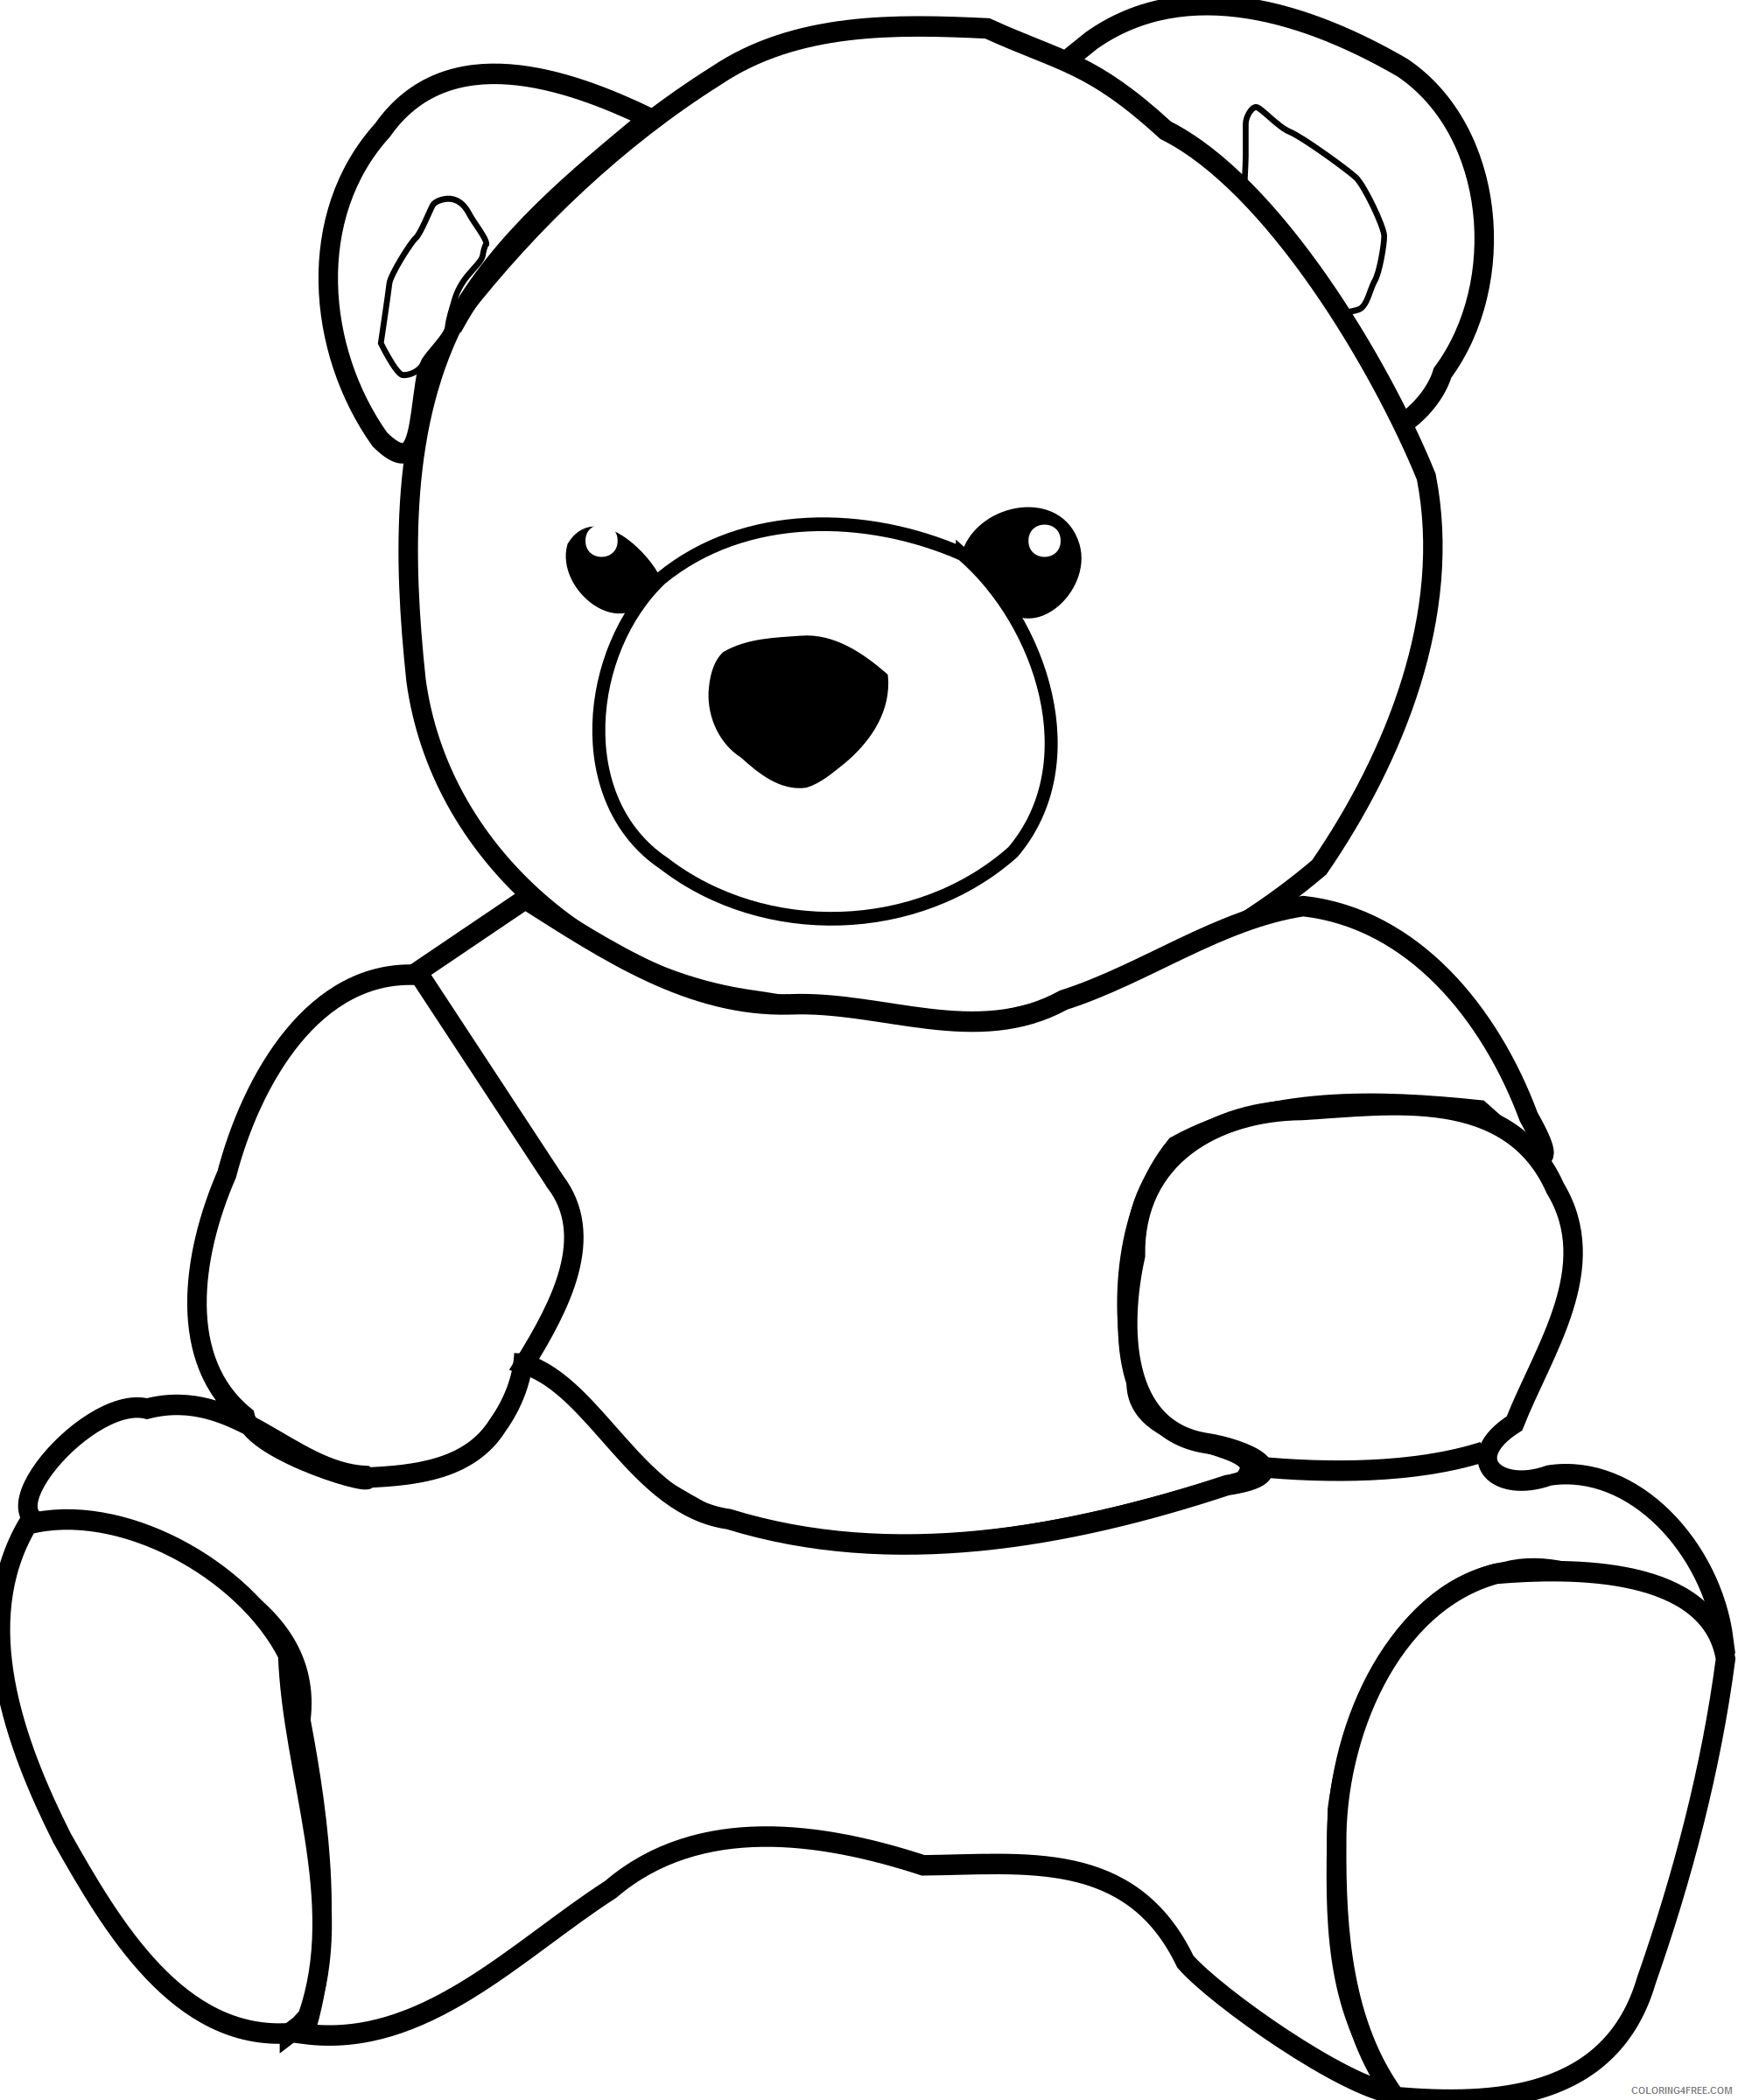 Teddy Bear Coloring Pages Dkdlv Teddy Bear Bpng Printable Coloring4free Coloring4free Com